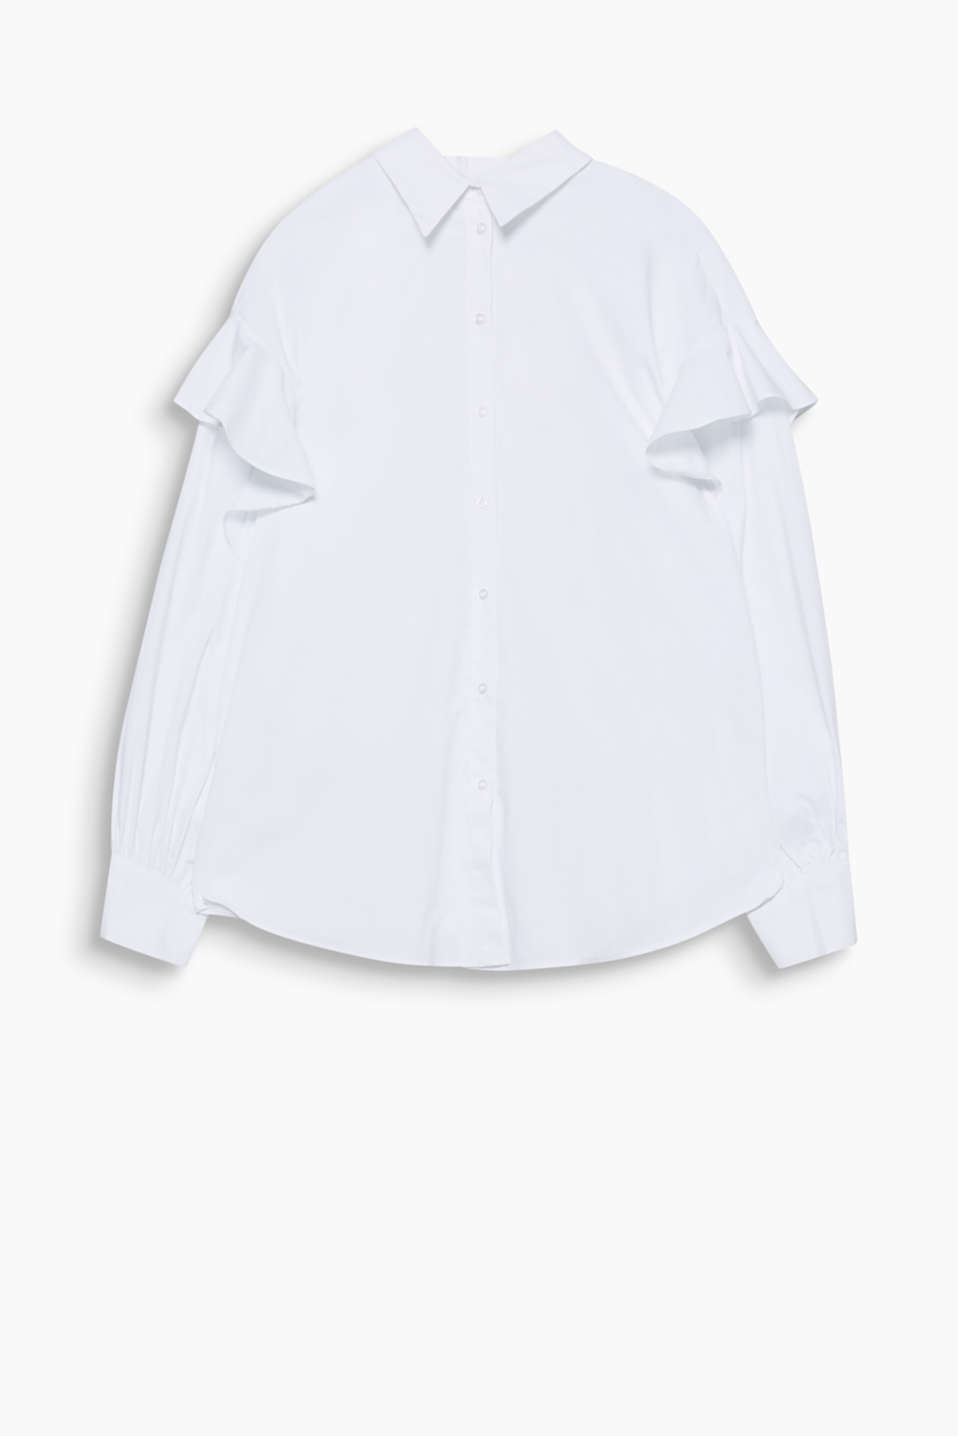 So feminine and smart at the same time: poplin blouse made of stretchy blended cotton with frilled sleeves